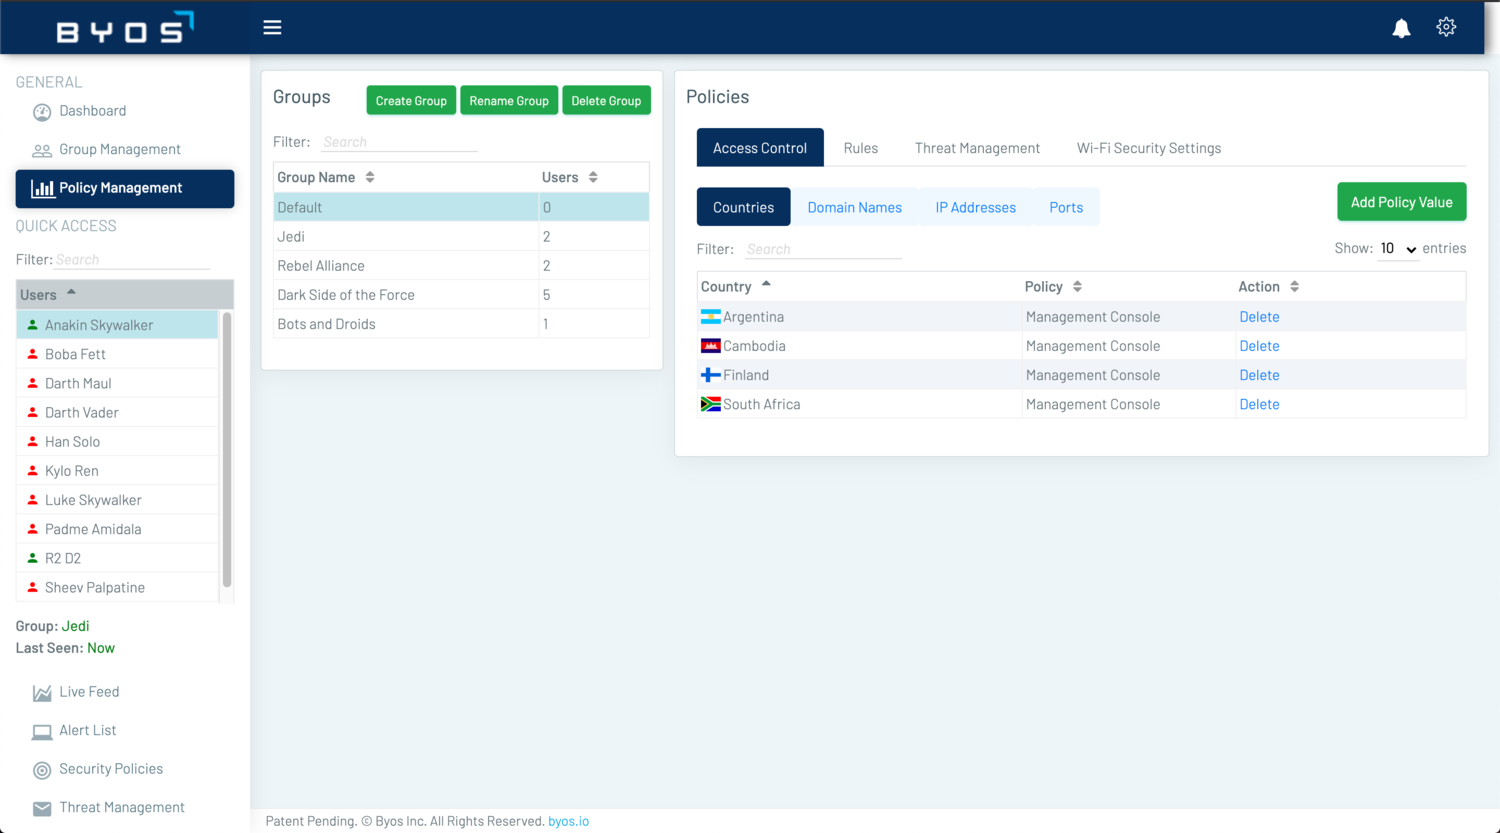 The Management Consoles Policy Management tab allows for security policy customization based on Groups. Security policy options include: Access Control, Rules, Threat Management, and Wi-Fi Security Settings. This screenshot shows the Country block Access Control feature.